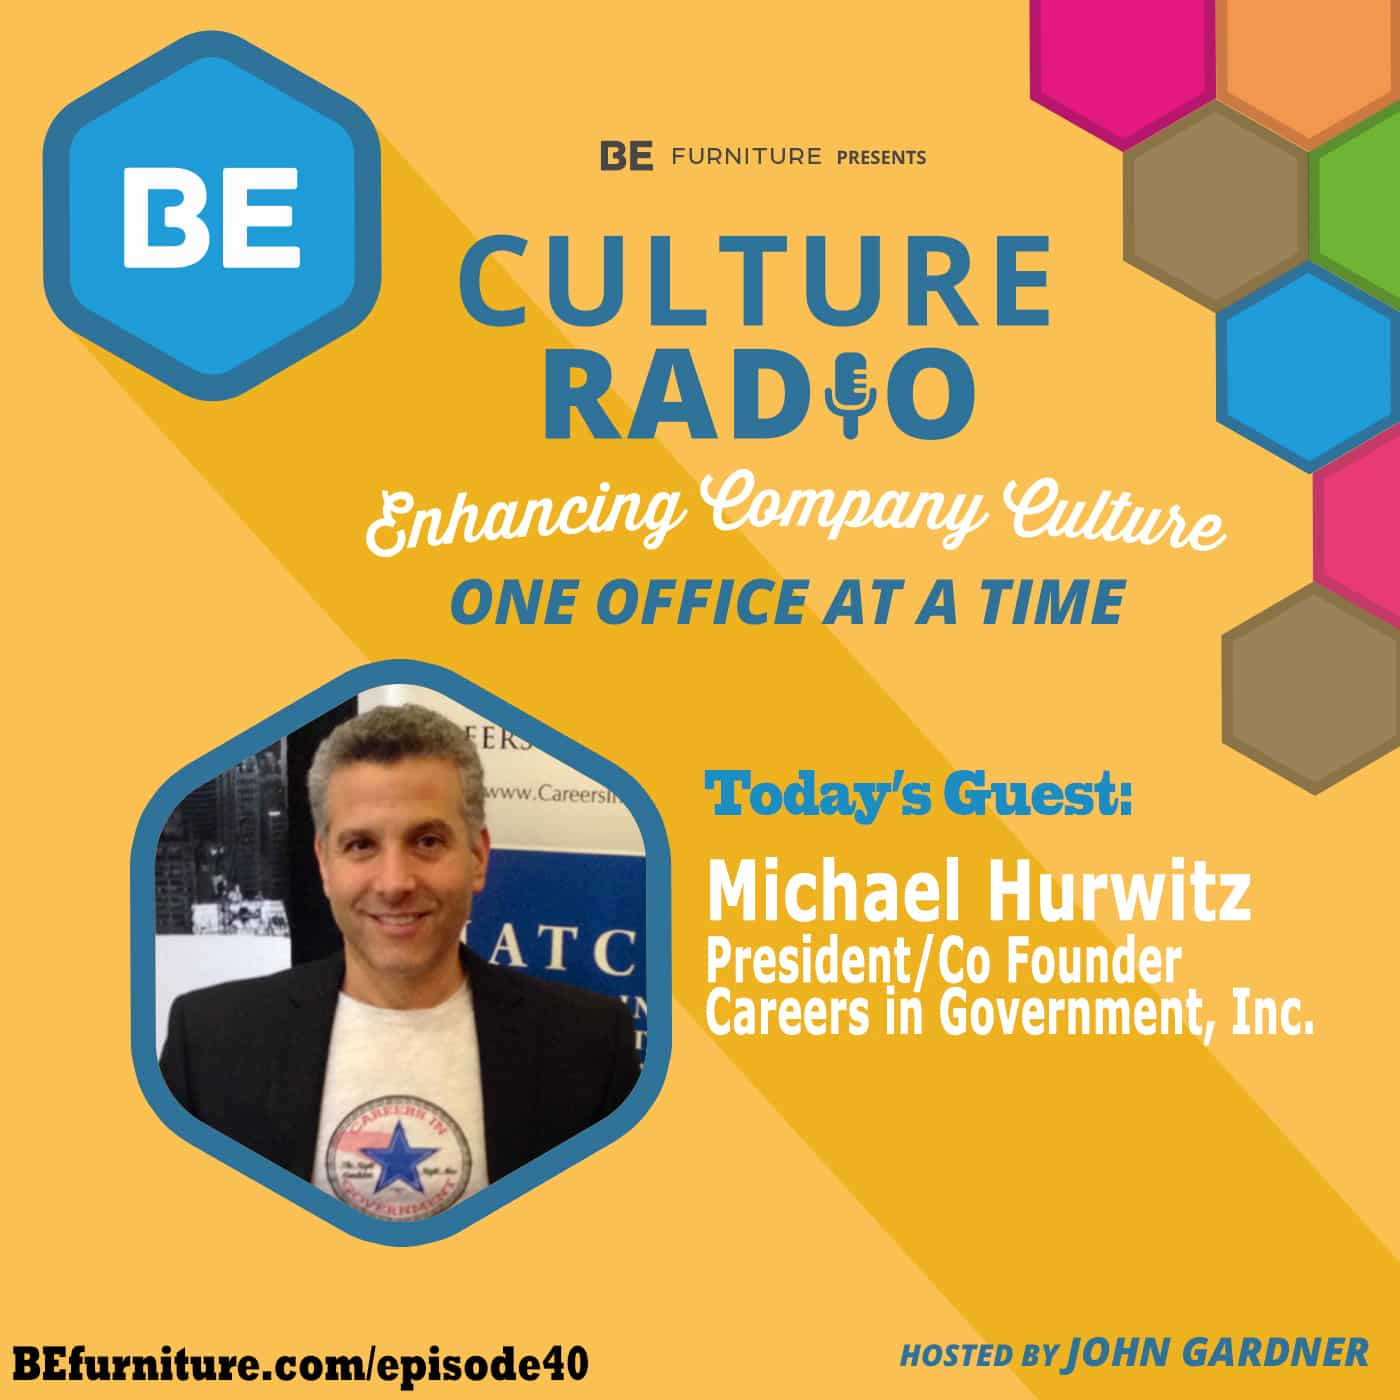 Michael Hurwitz - President/Co-Founder, Careers in Government